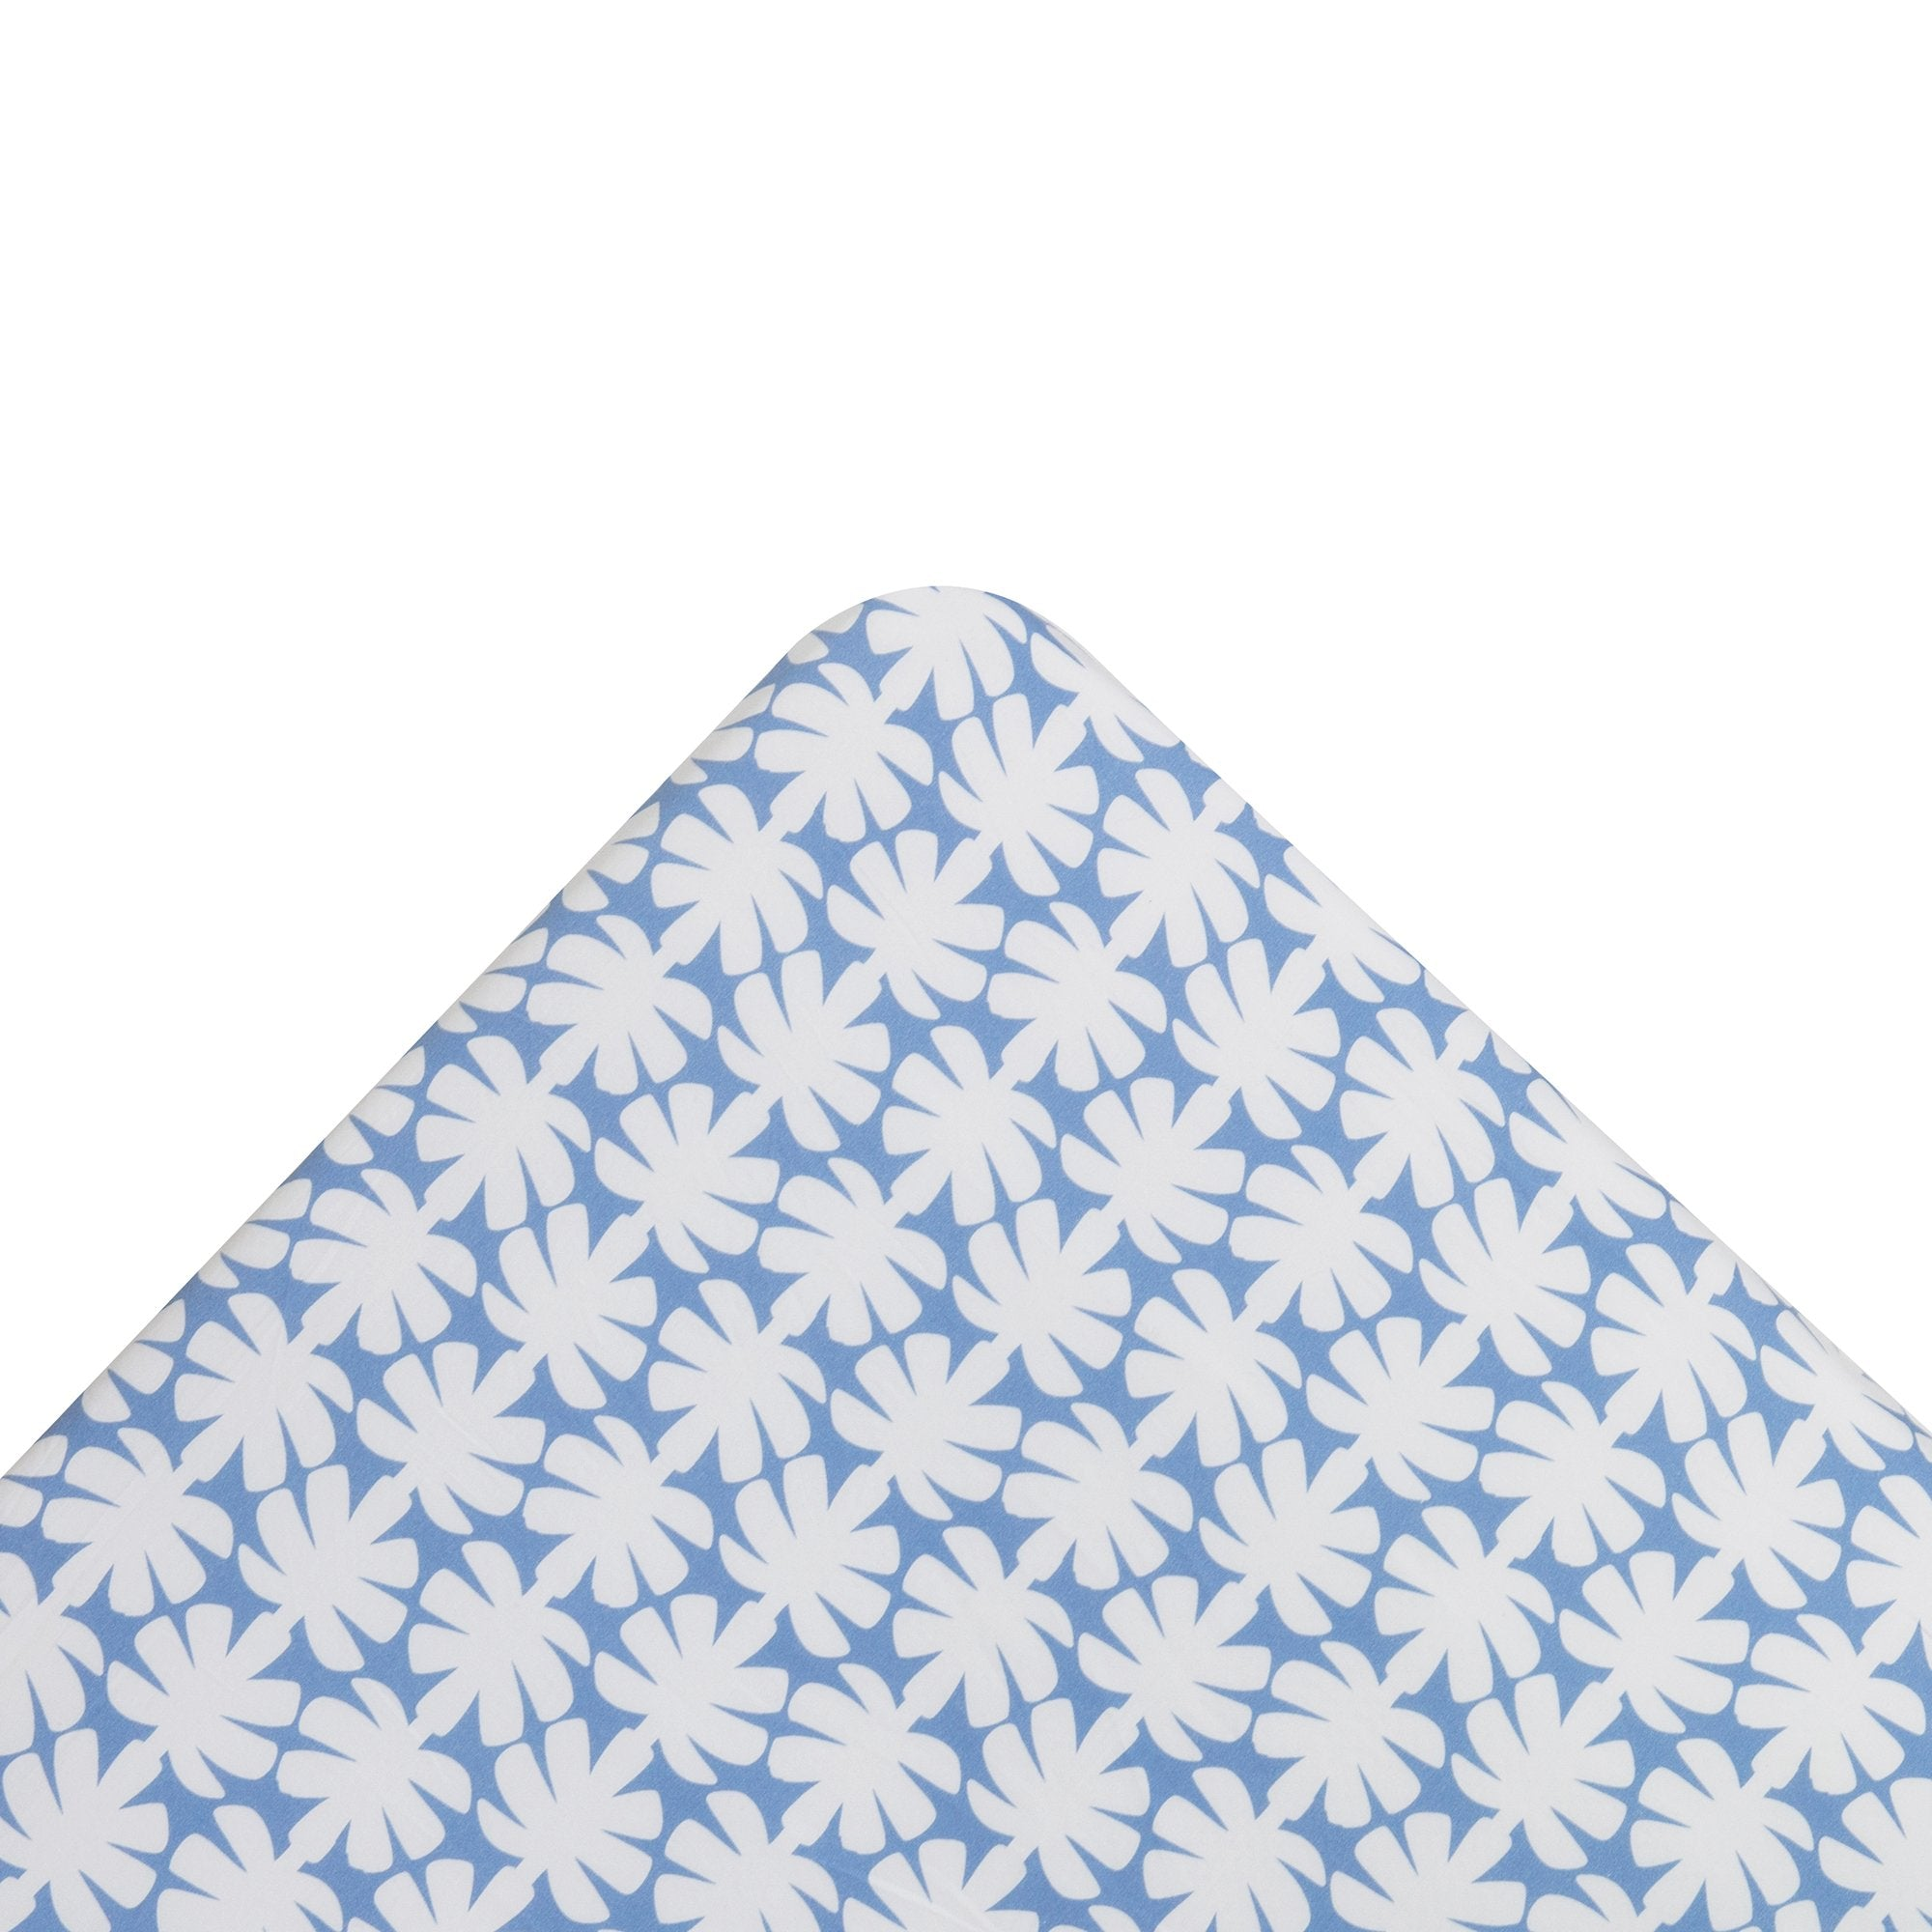 Kikau's Ocean Blue Coco Palm kids fitted sheet on white background